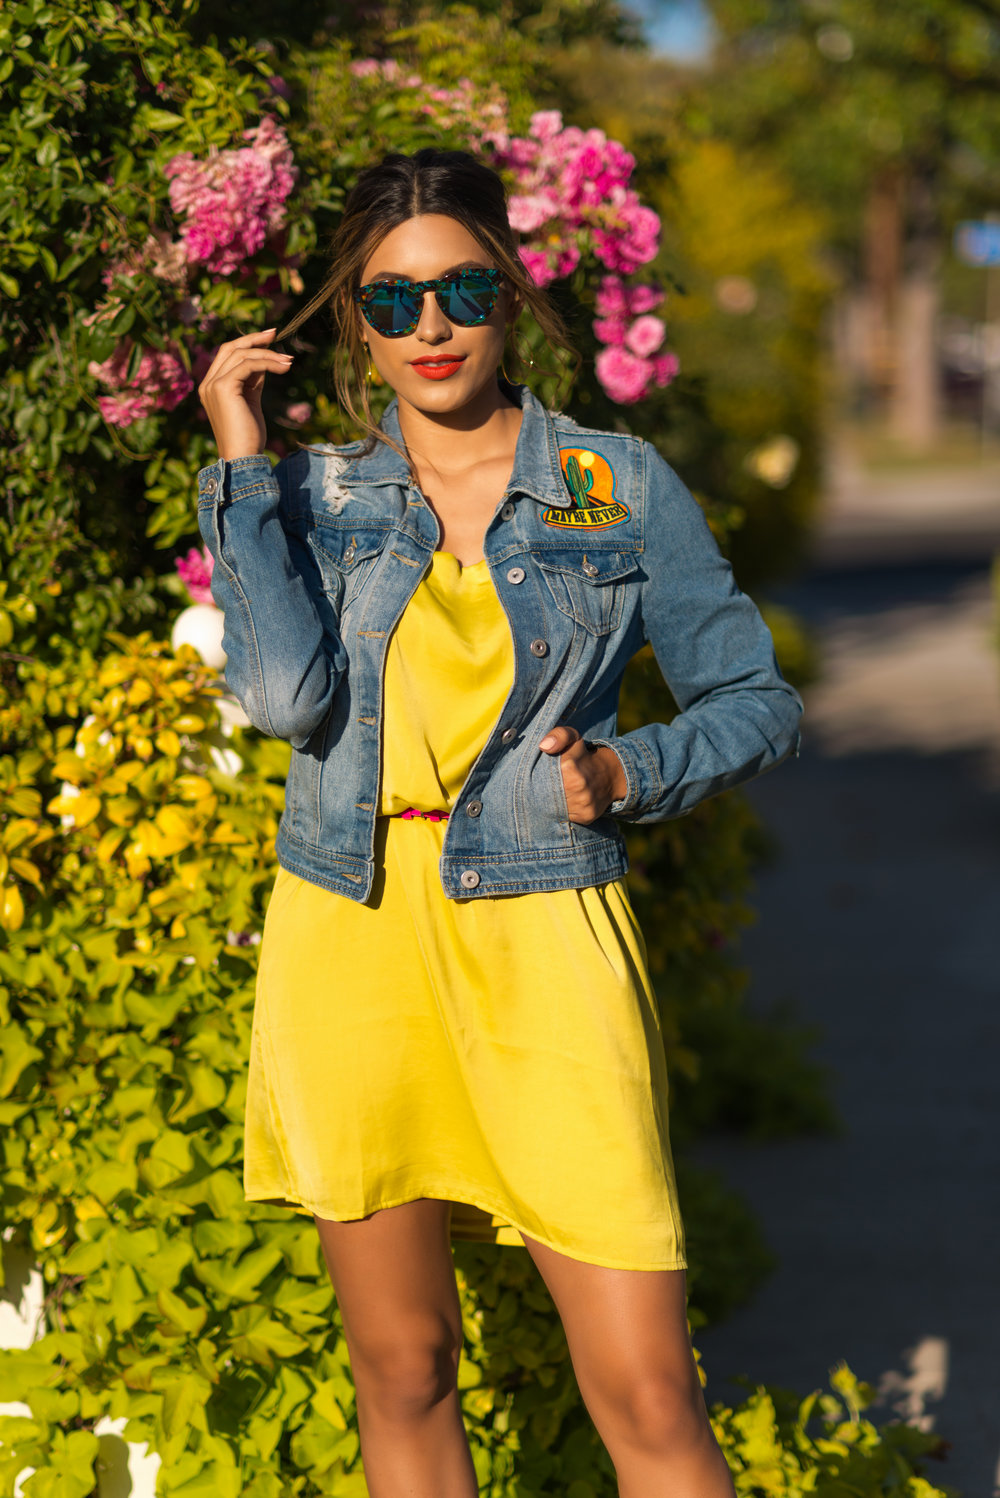 Sunglasses:  DIFF Eyewear // Dress:  Forever21 // Jacket:  Boom Boom Jeans // Shoes:  Chinese Laundry // Earrings:  Gorjana // Clutch:  Forever21 // Photos:  Miguel Chavez